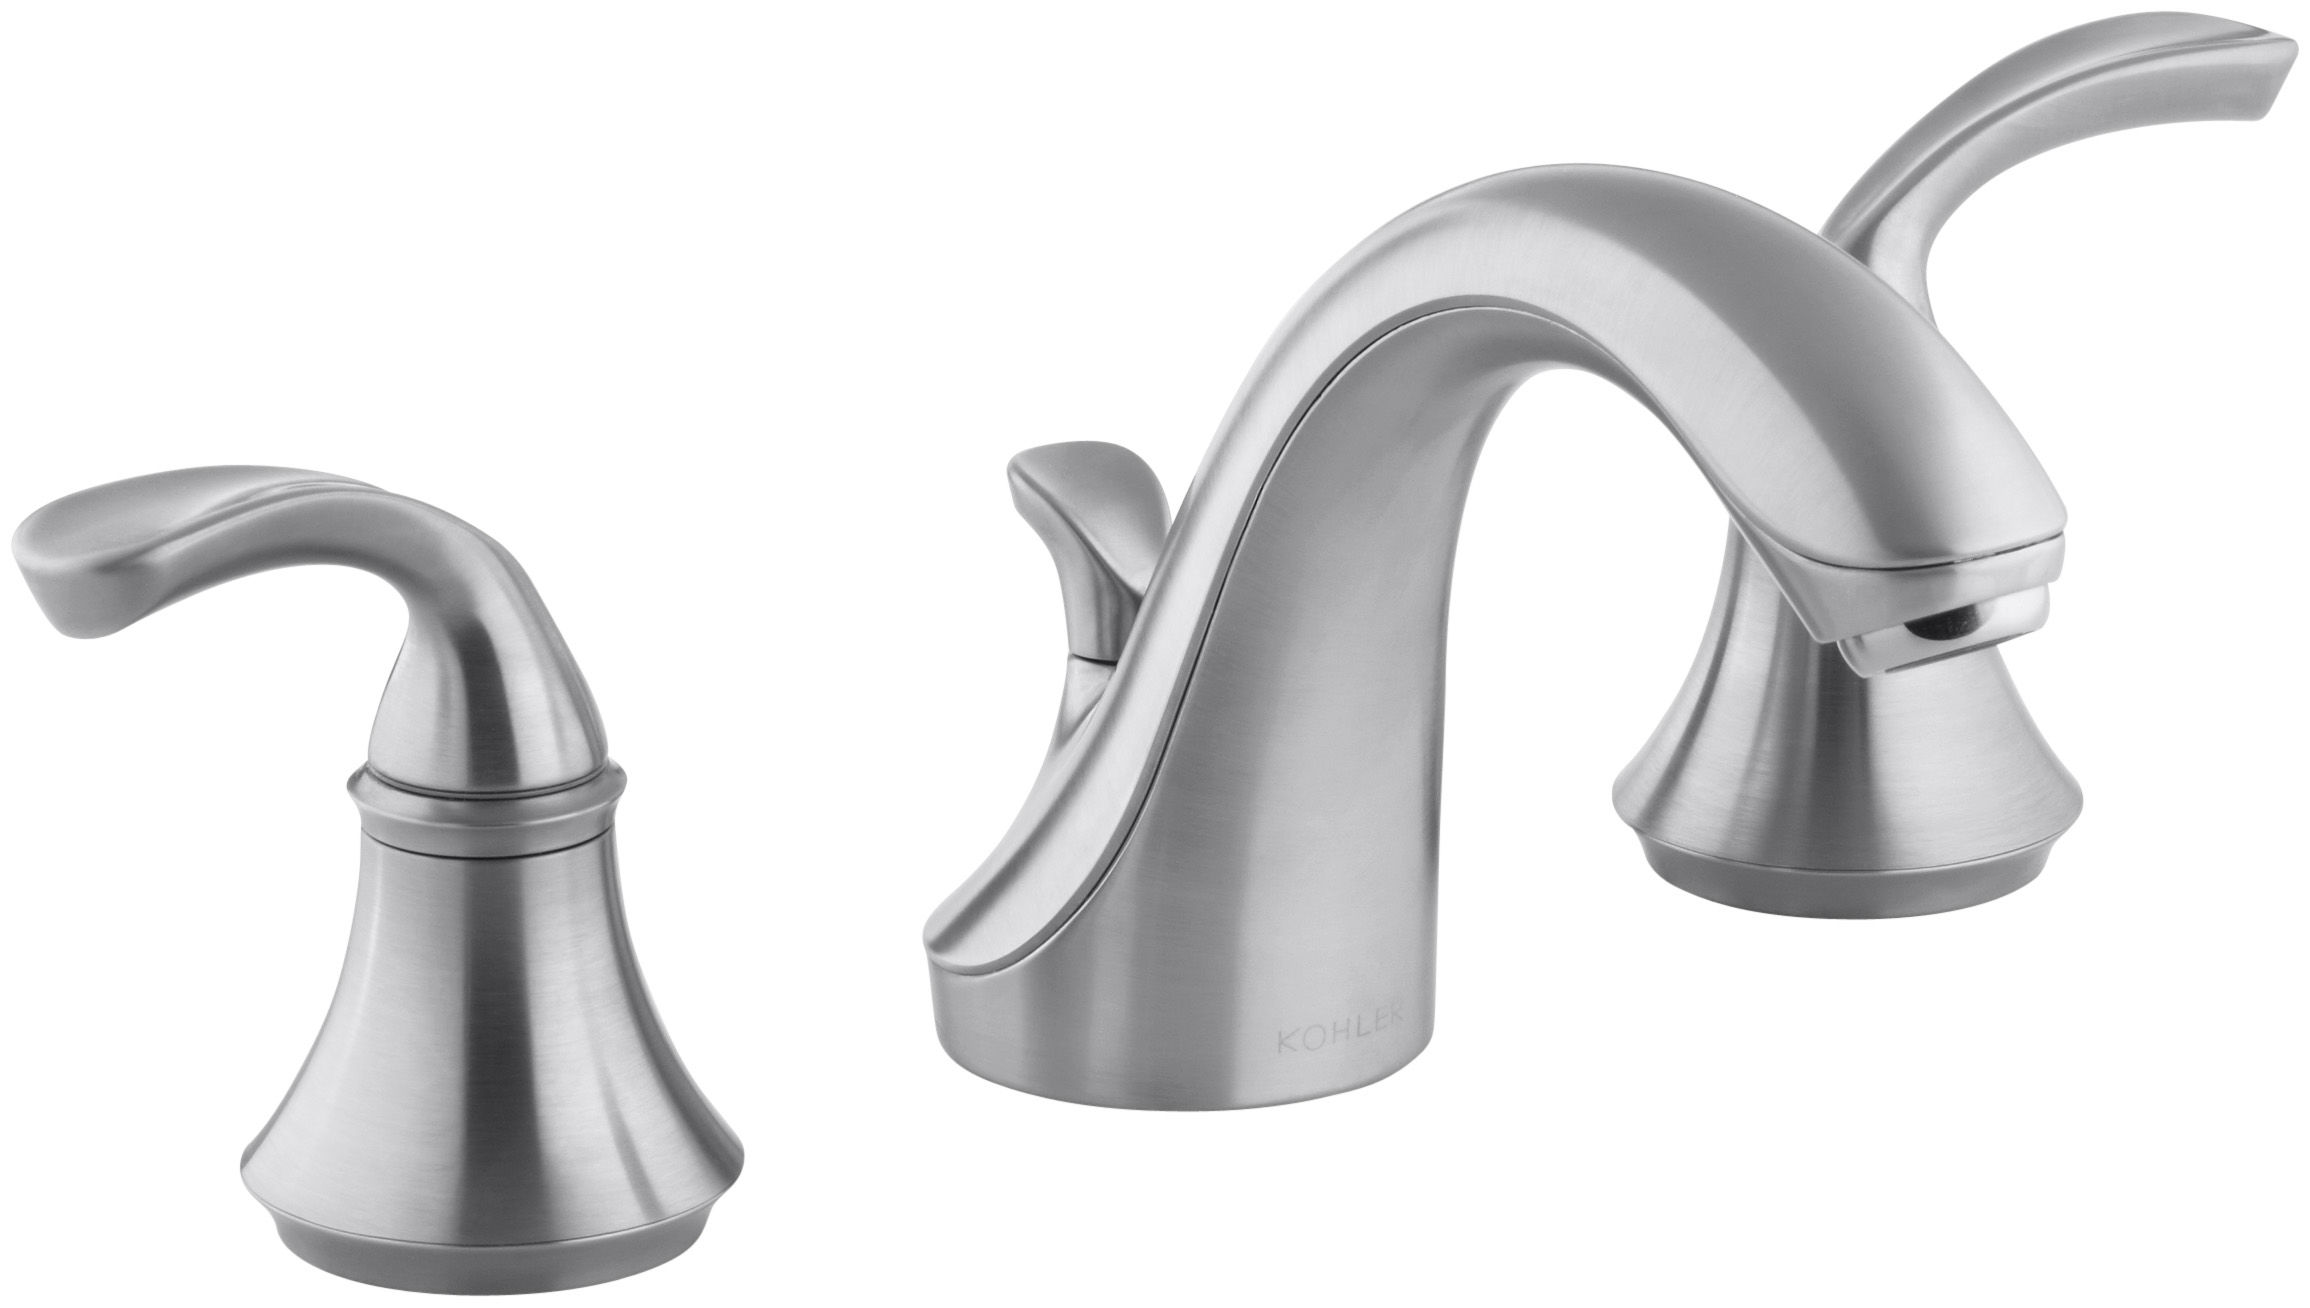 Kohler KG Brushed Chrome Forte Widespread Bathroom Faucet - Kohler bathroom faucet handles